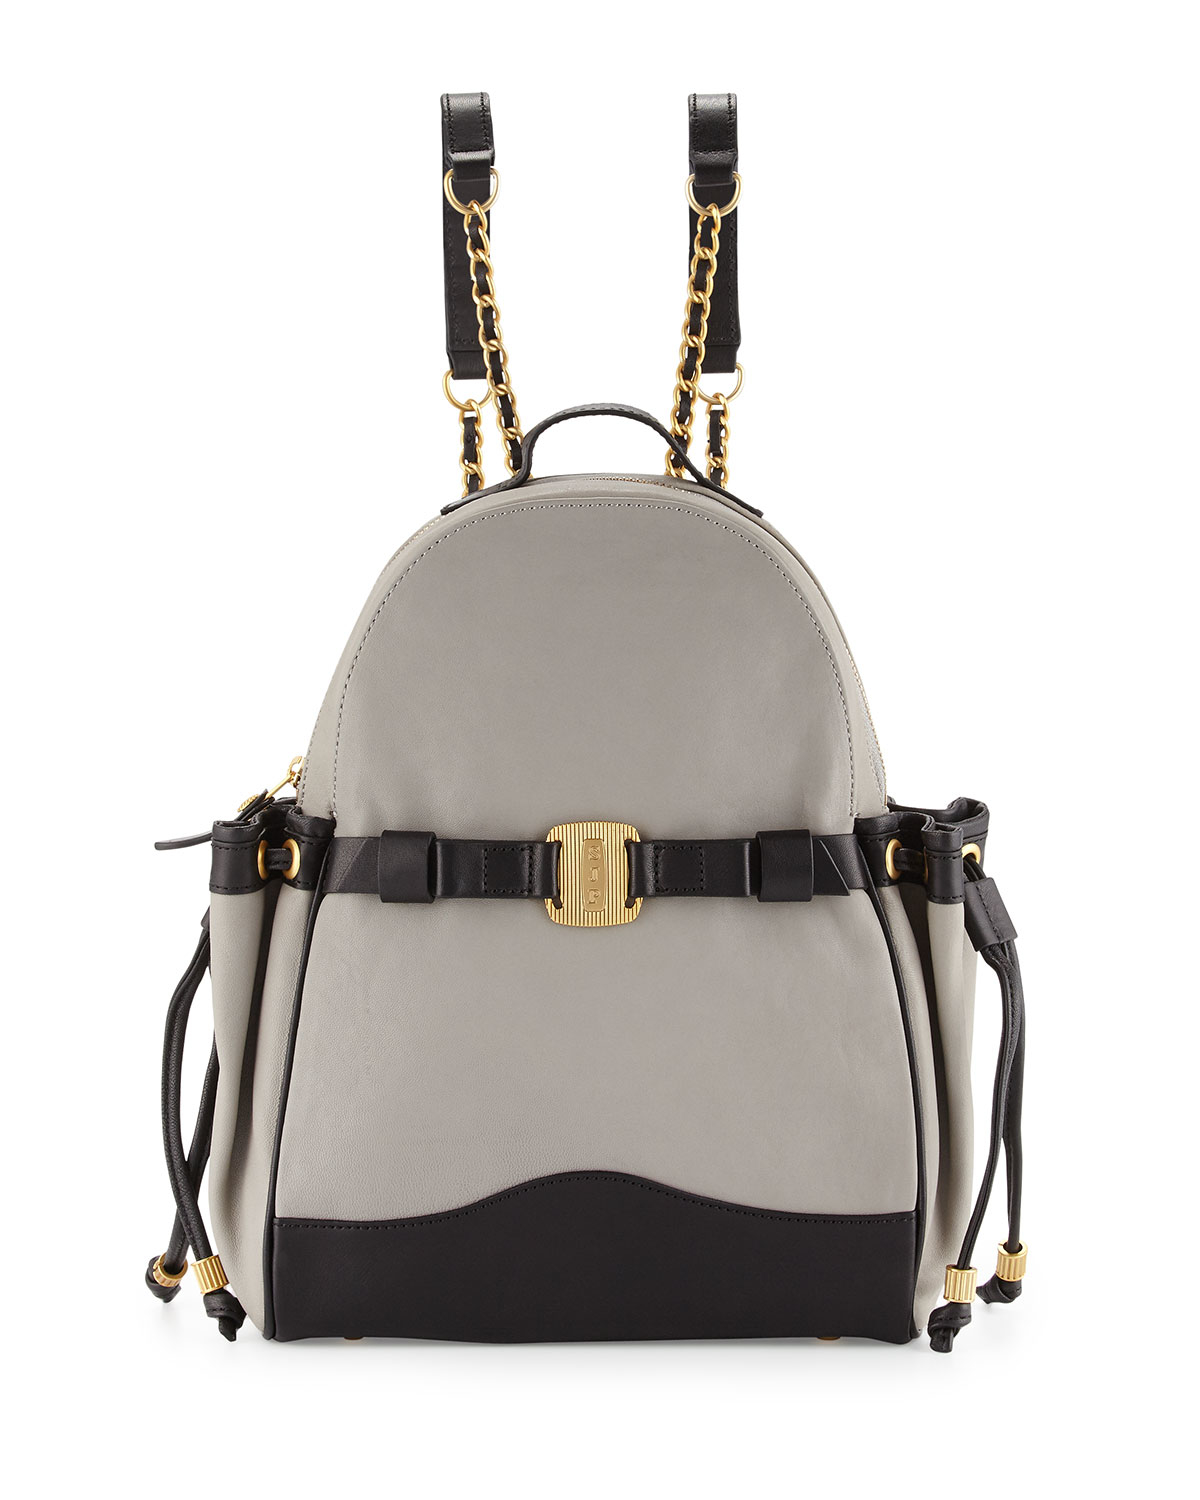 Tote Bags For Uni Sjp By Sarah Jessica Parker Uni Colorblock Leather